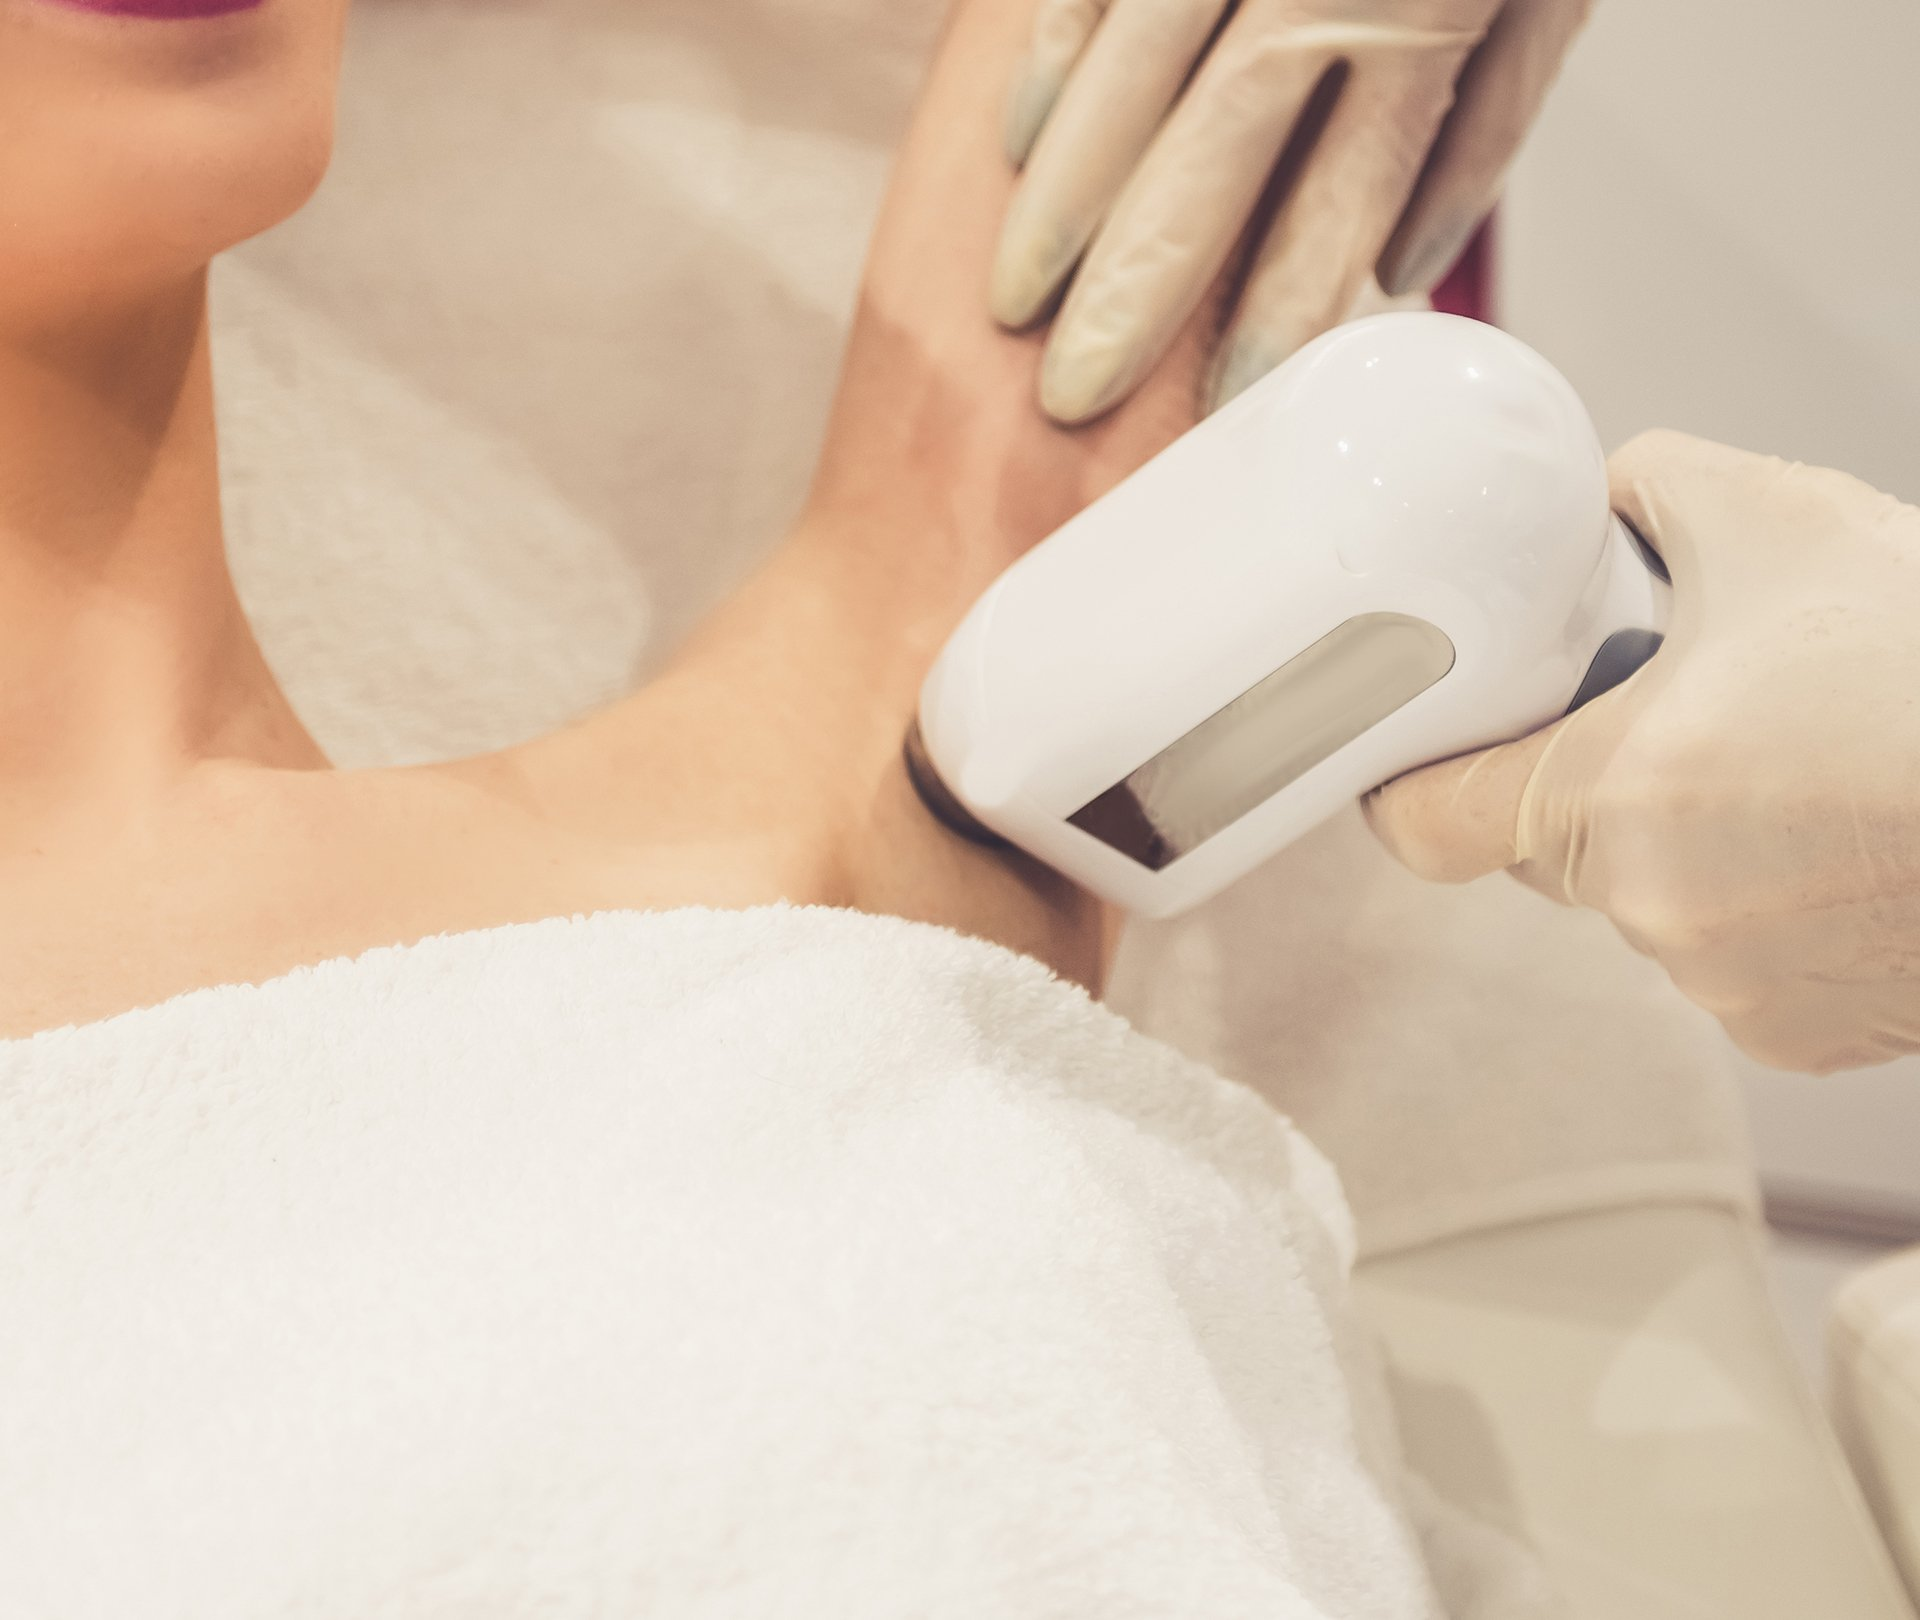 Photo of a female patient receiving laser hair removal treatment from a skincare professional on her underarm.